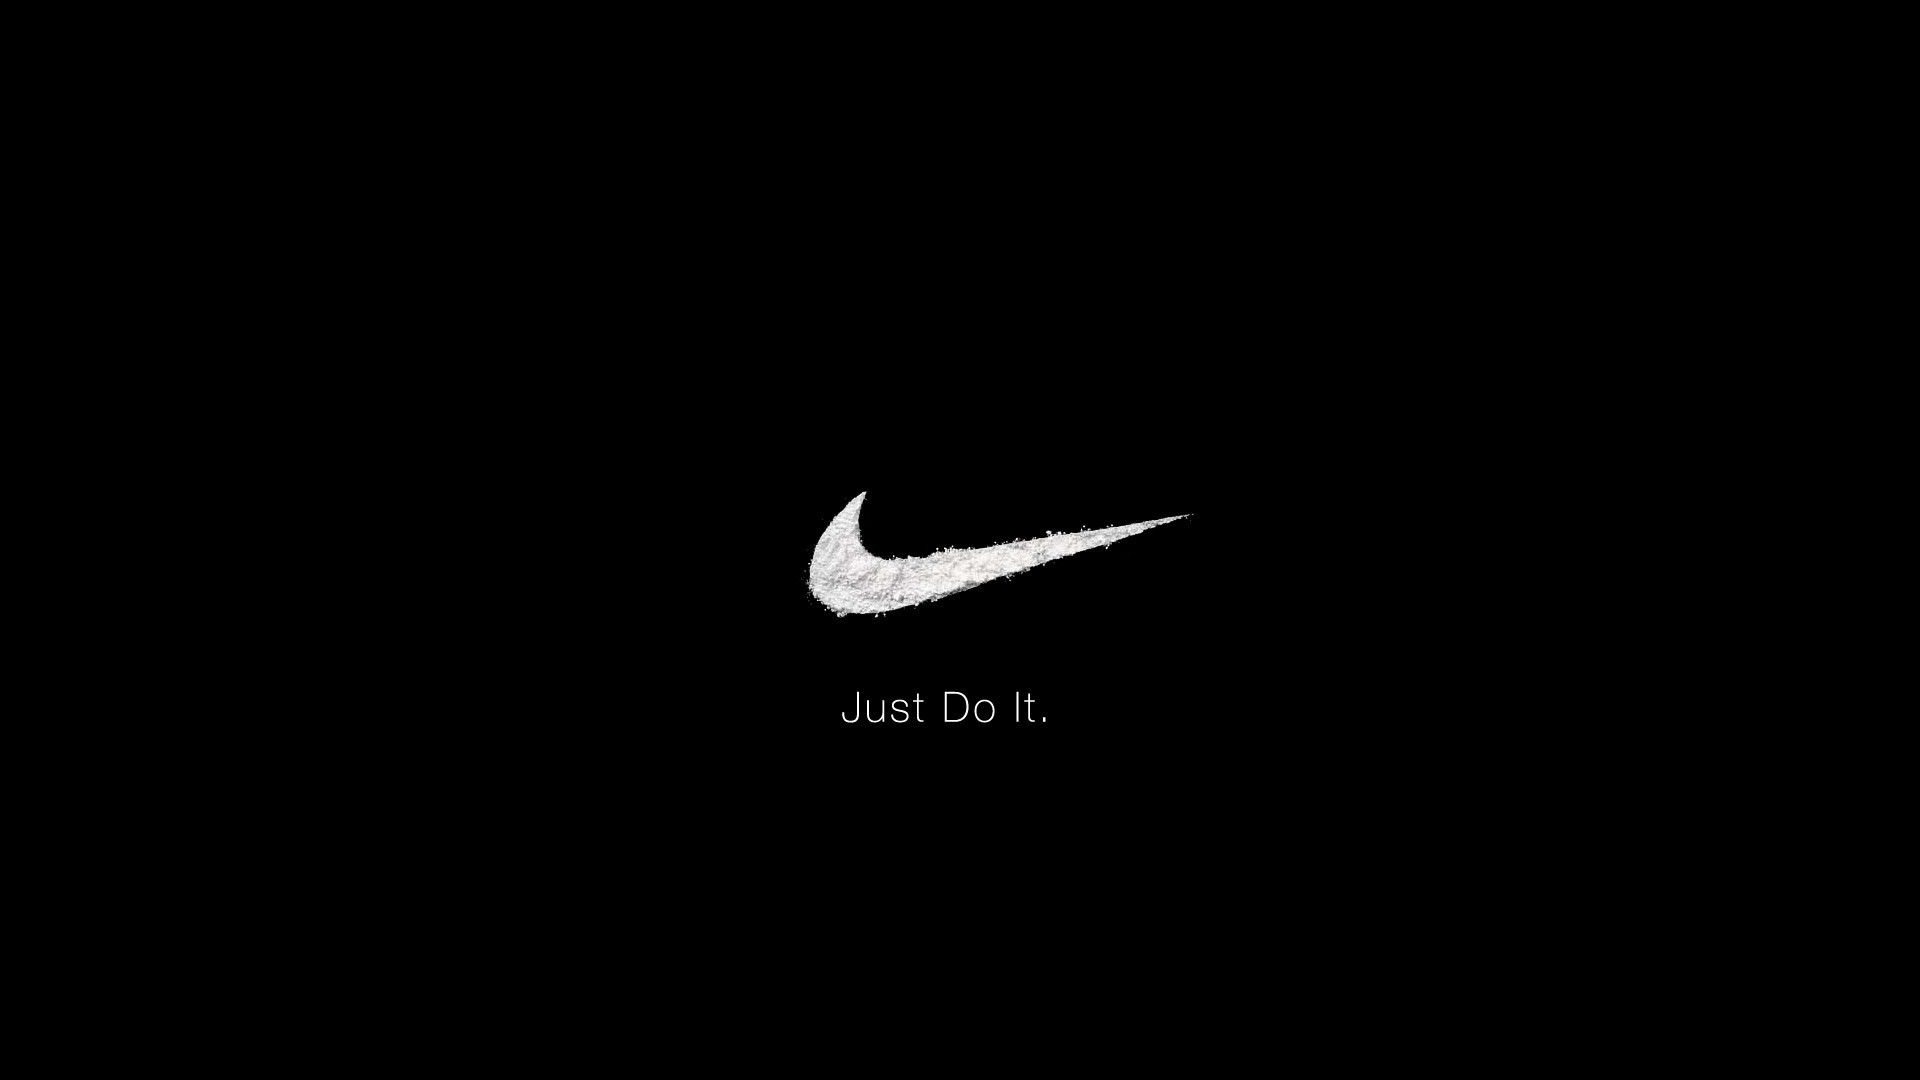 Just Do It Wallpaper 23269 1920x1080 Px  HDWallSourcecom